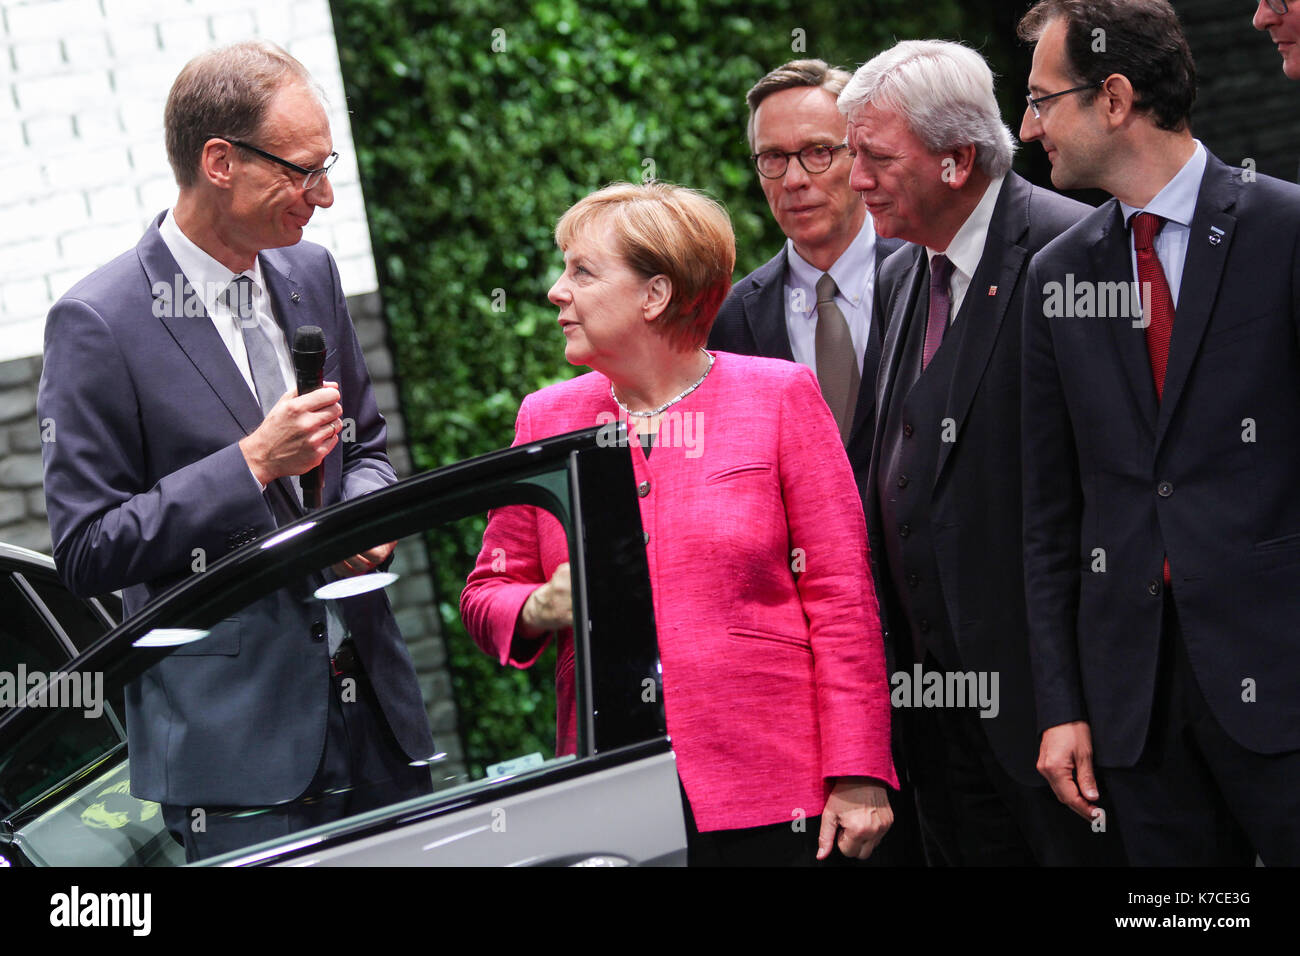 Frankfurt, Germany. 14th September, 2017. International Motor Show 2017 (IAA, Internationale Automobil-Ausstellung), opening walk with Angela Merkel, chancellor of Germany, here at Opel booth: Michael Lohscheller (CEO Opel), Angela Merkel, Matthias Wissmann (president of German Association of the Automotive Industry, VDA, Verband der Automobilindustrie), Volker Bouffier (prime minister of Hesse), Philippe de Rovira (Chief Financial Officer Opel). Credit: Christian Lademann - Stock Image